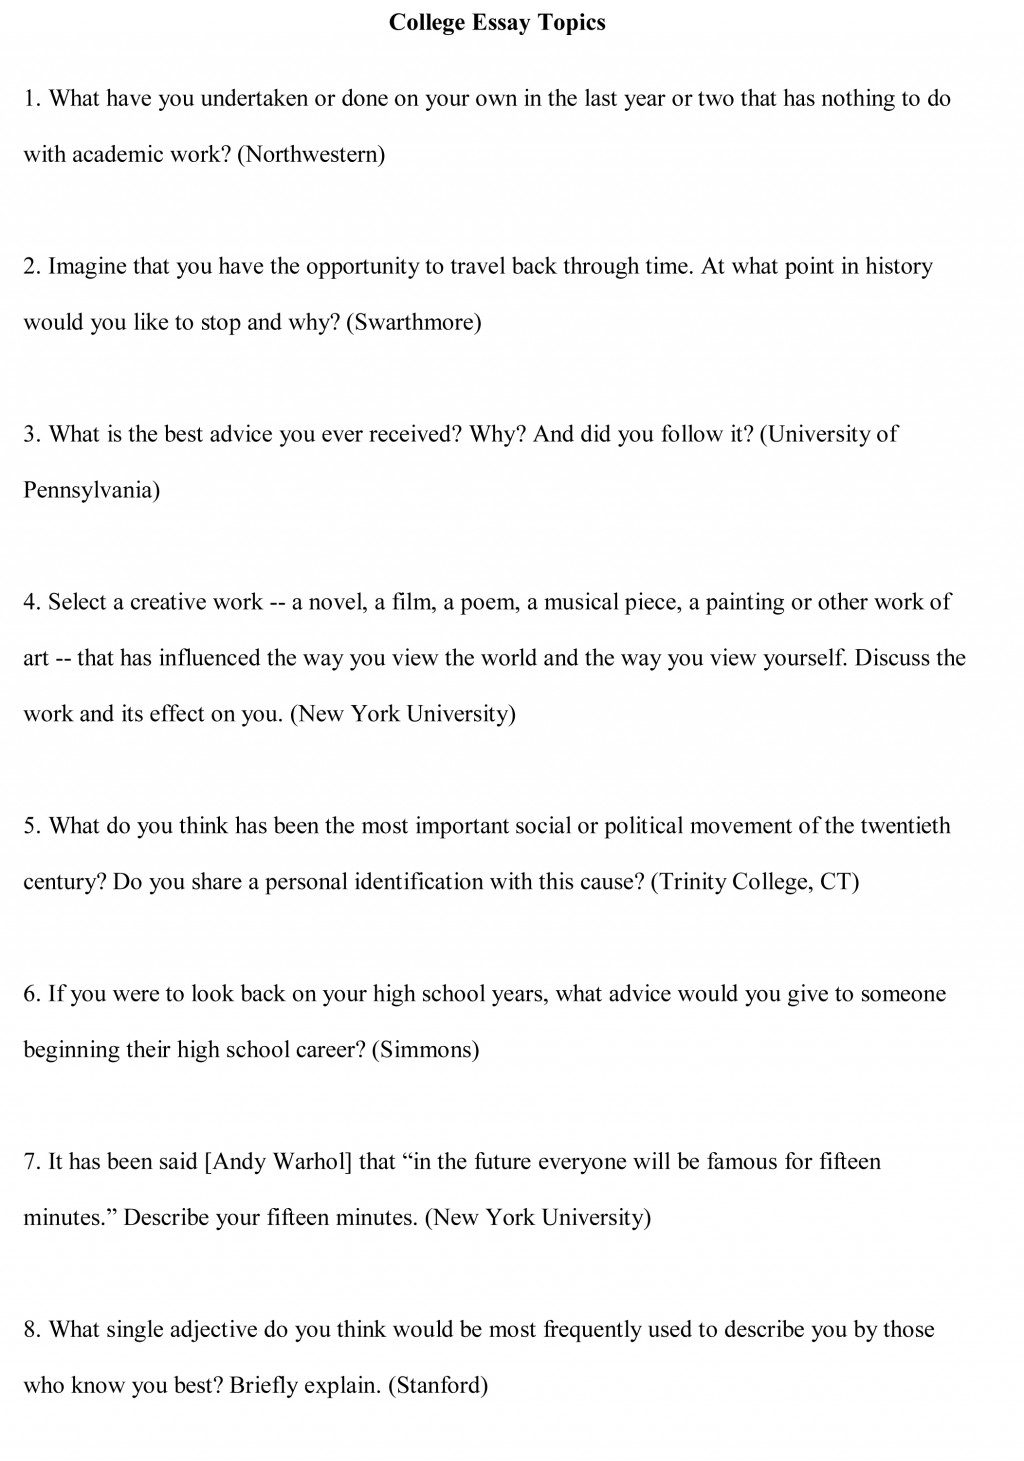 005 College Essay Questions Example Topics Free Frightening Crazy Application Harvard Prompts 2017 Mit Prompt Large